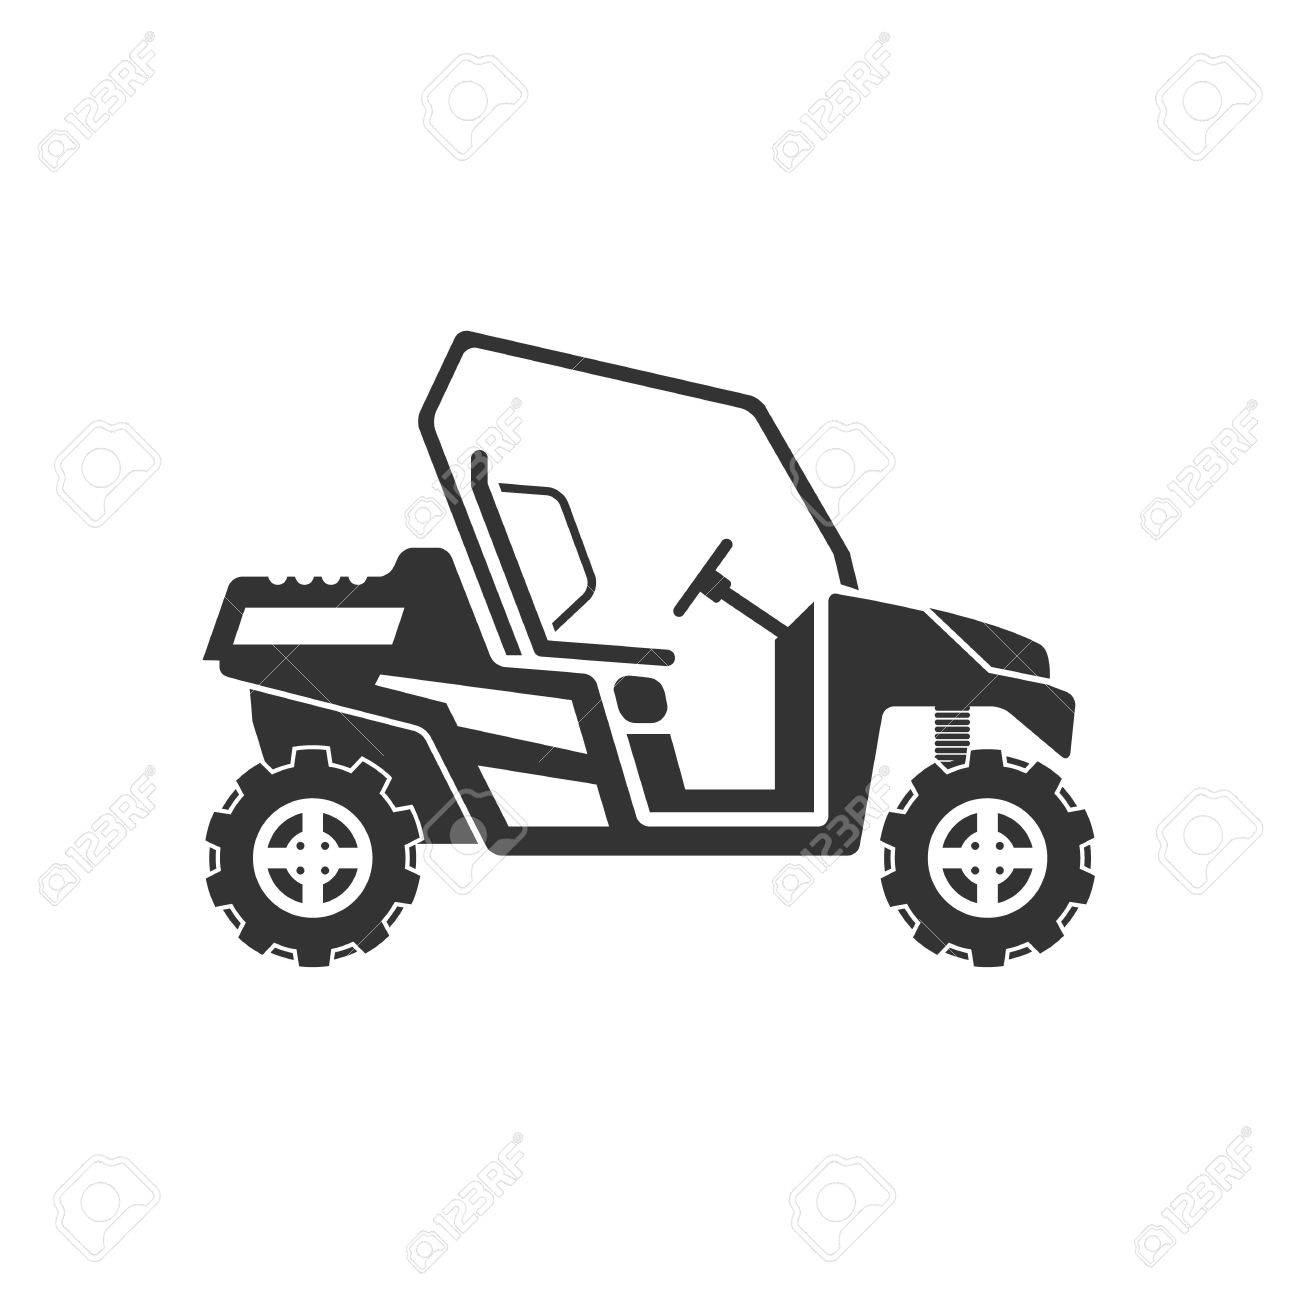 Dune buggy or desert car icon vector illustration isolated on...